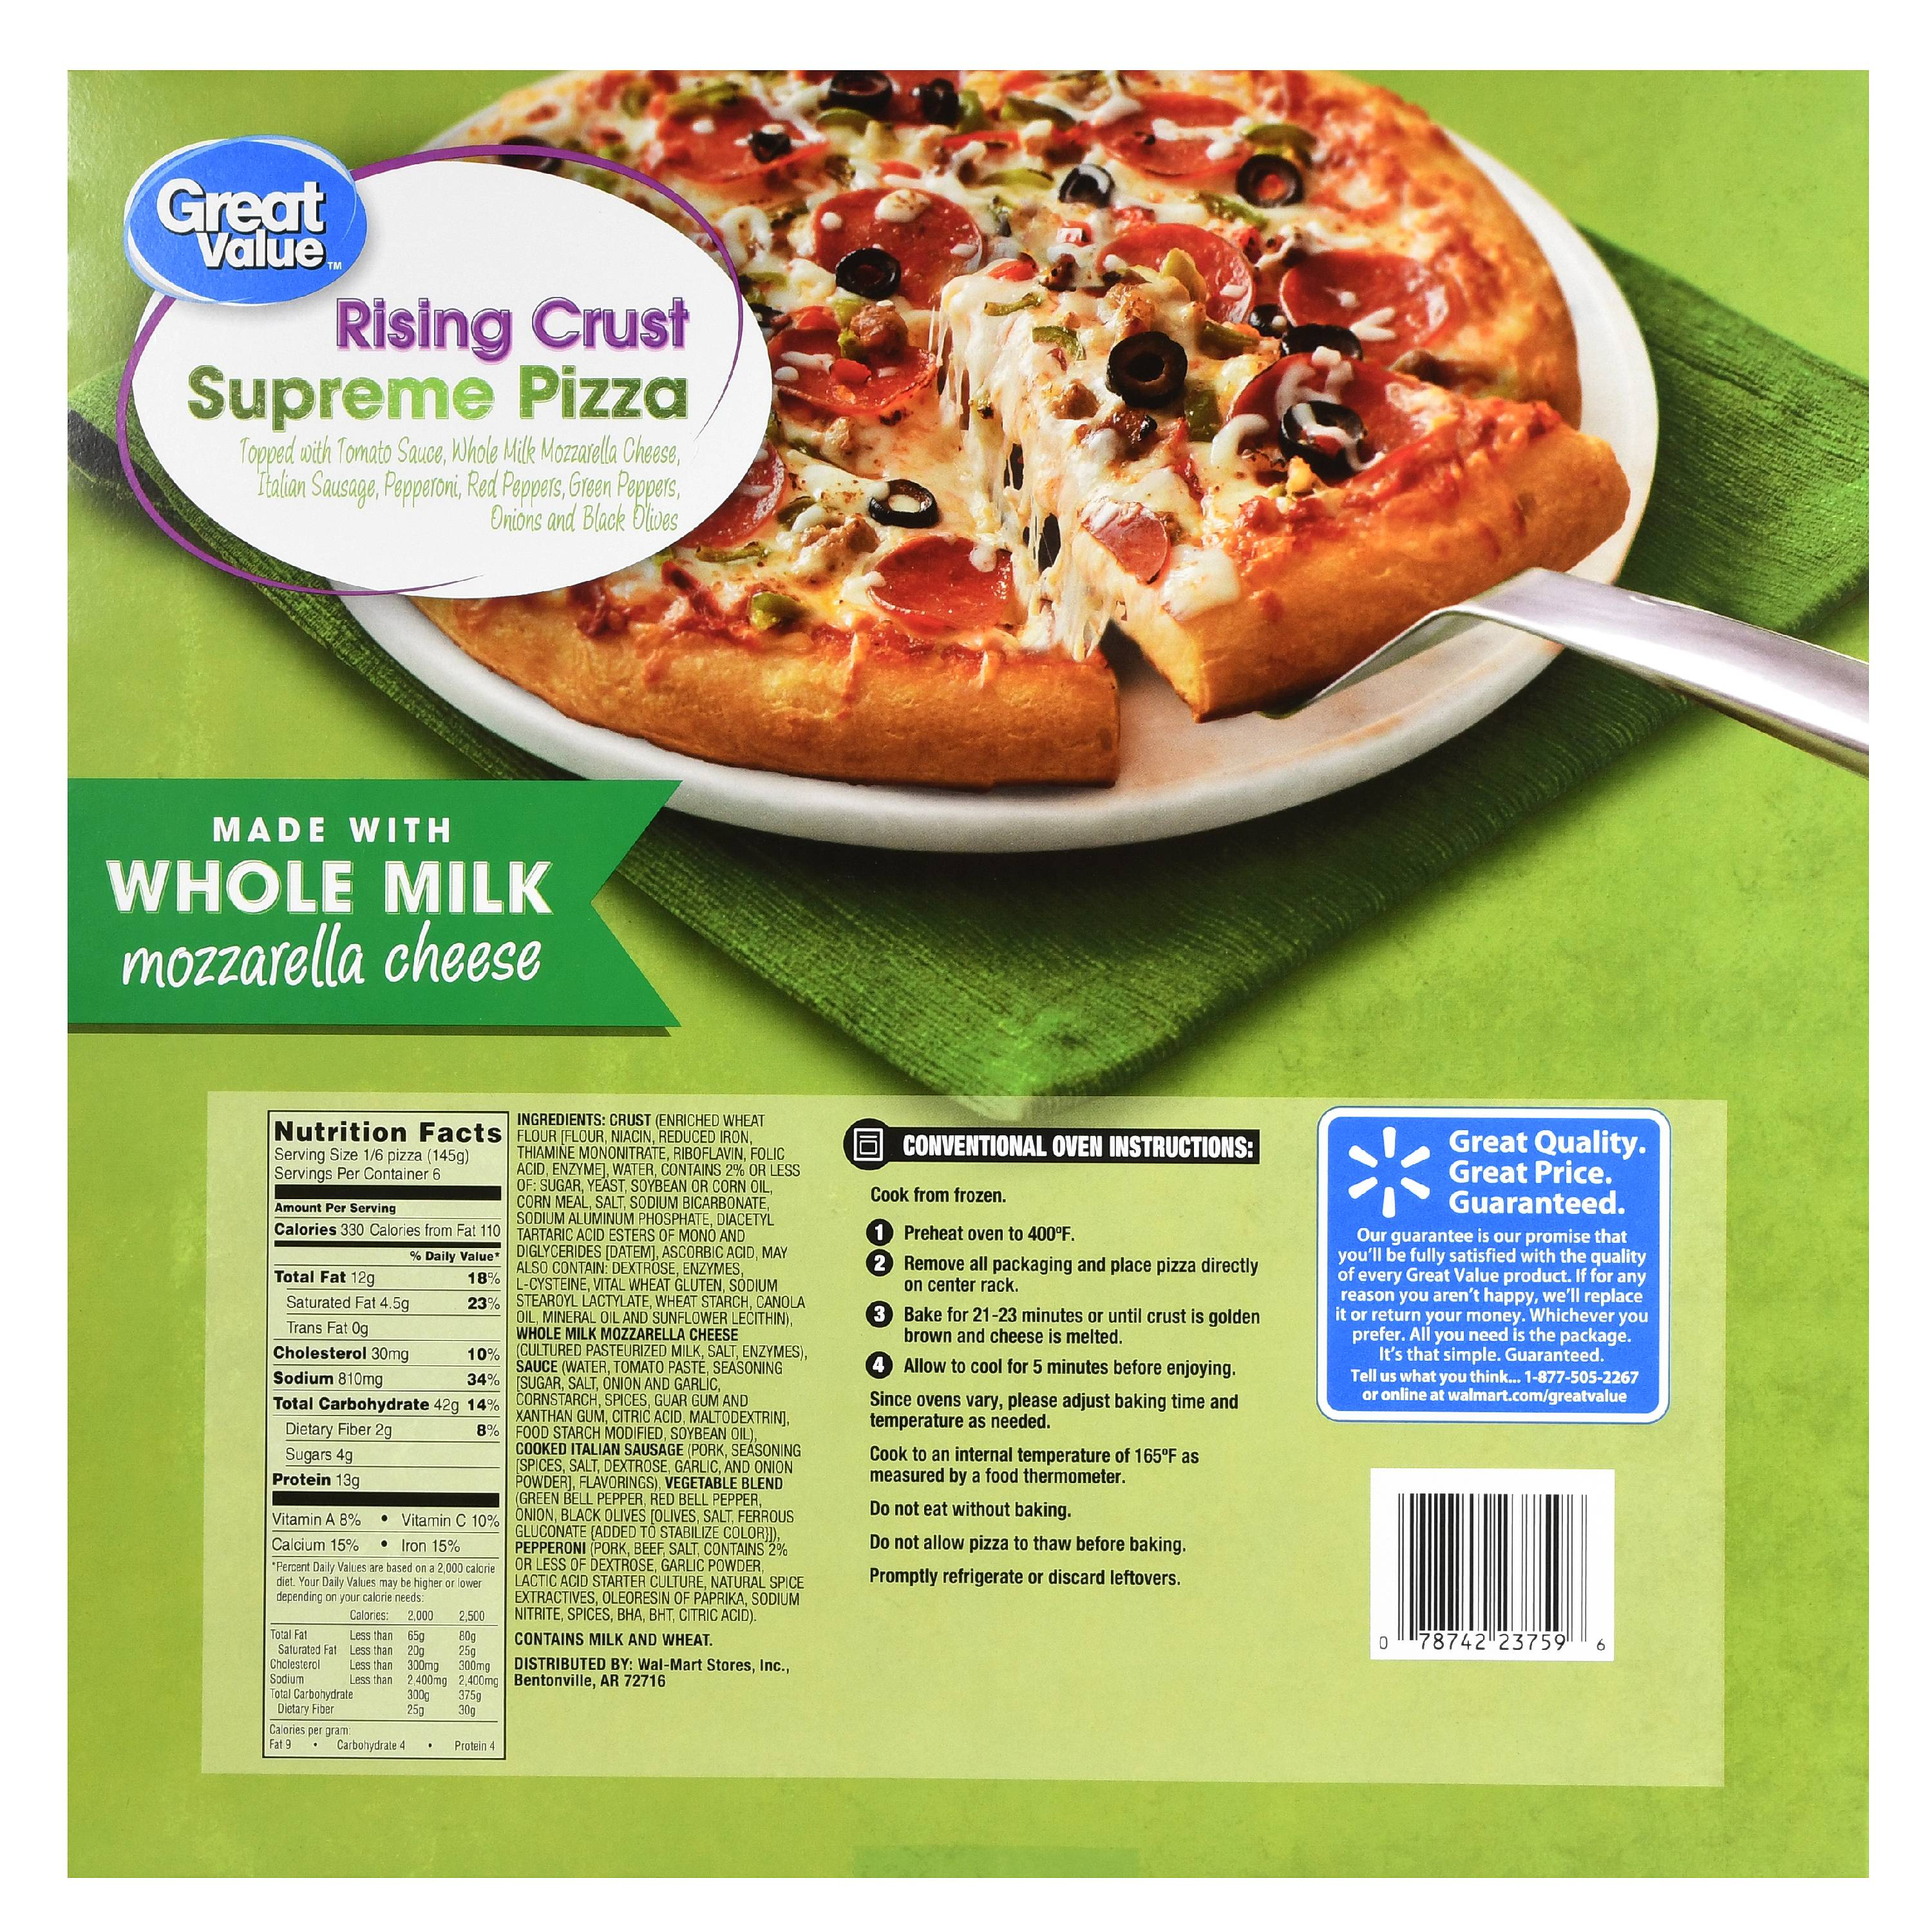 Great Value Frozen Rising Crust Supreme Pizza, 30.7 oz - Walmart.com